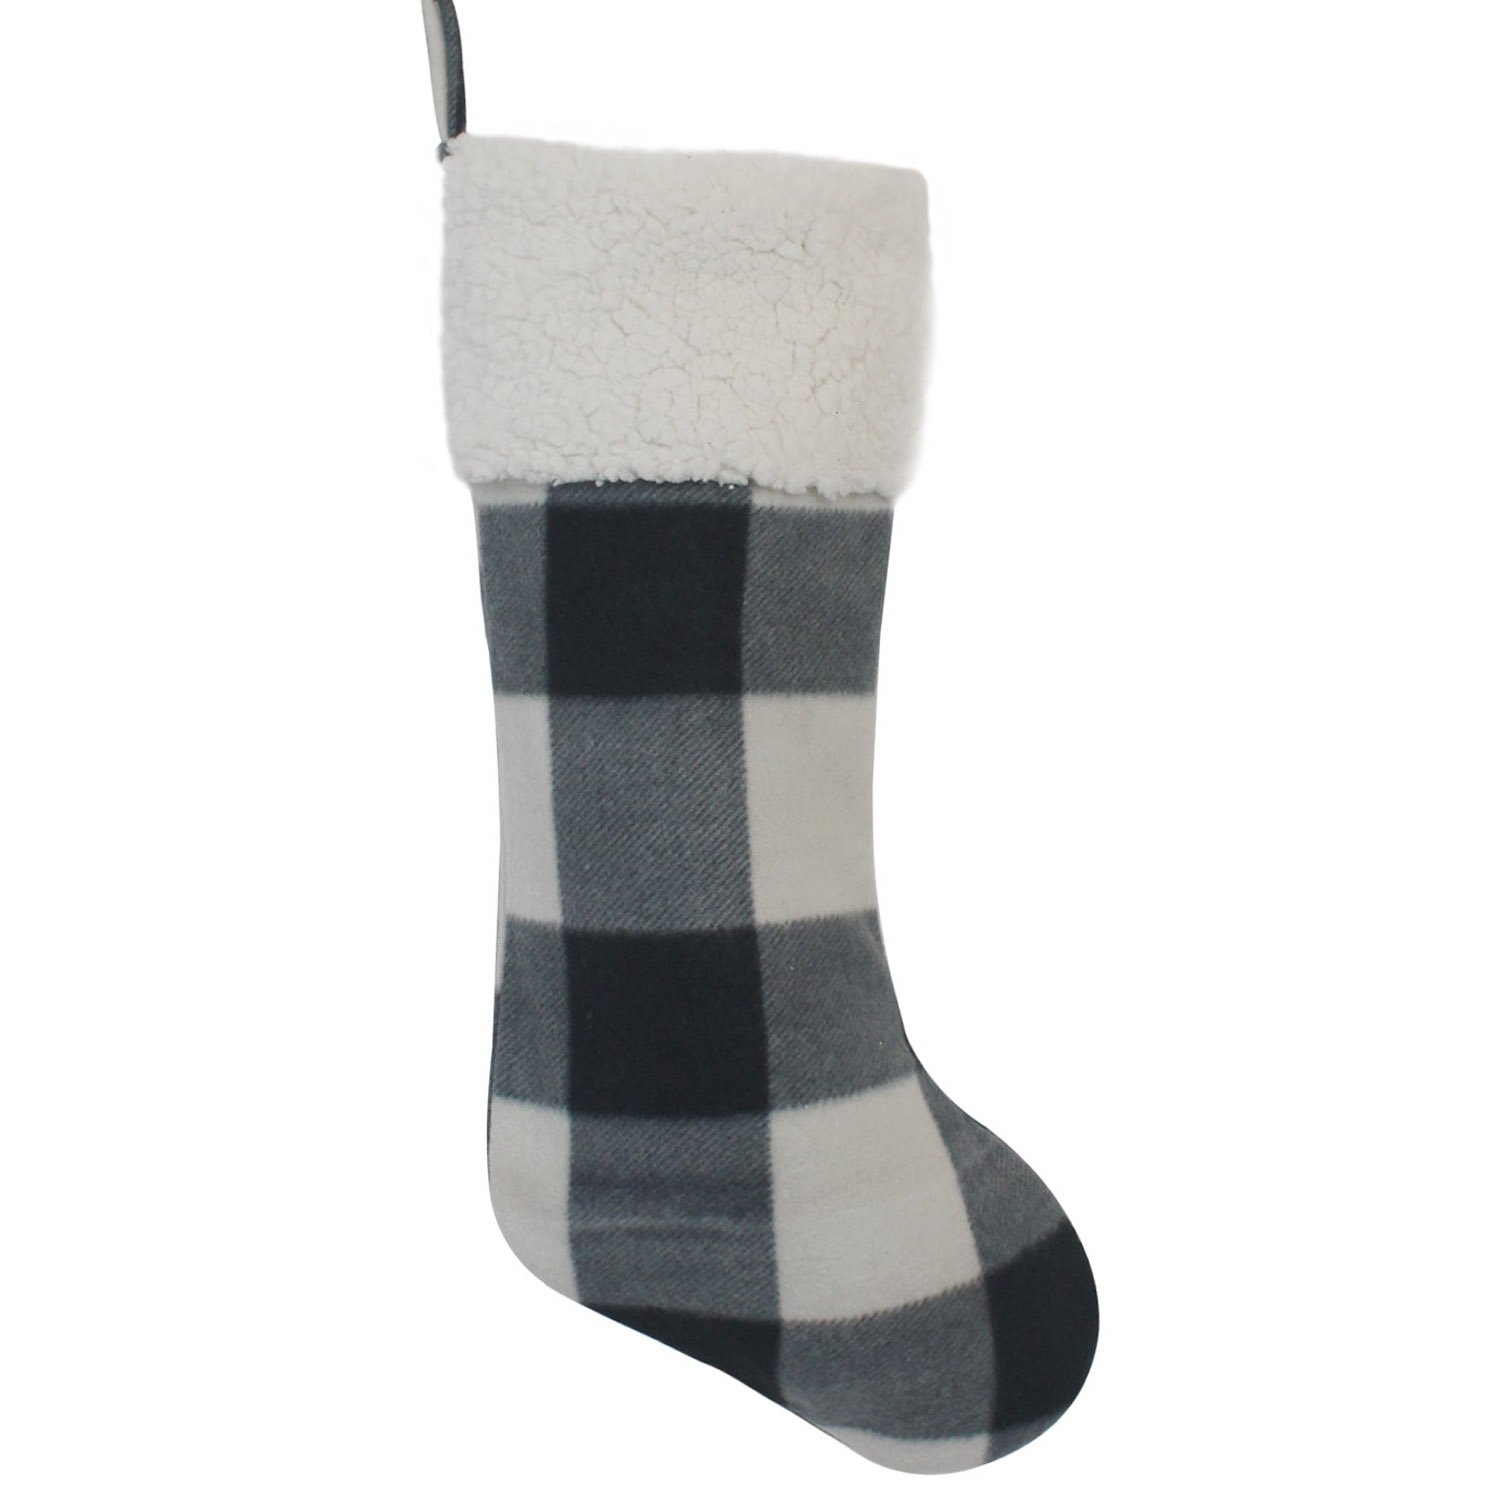 Gireshome Grey Buffalo Check Plaid with Sherpa Cuff Decoration Christmas Stocking Xmas Tree Decor Festival Party Ornament 10x18